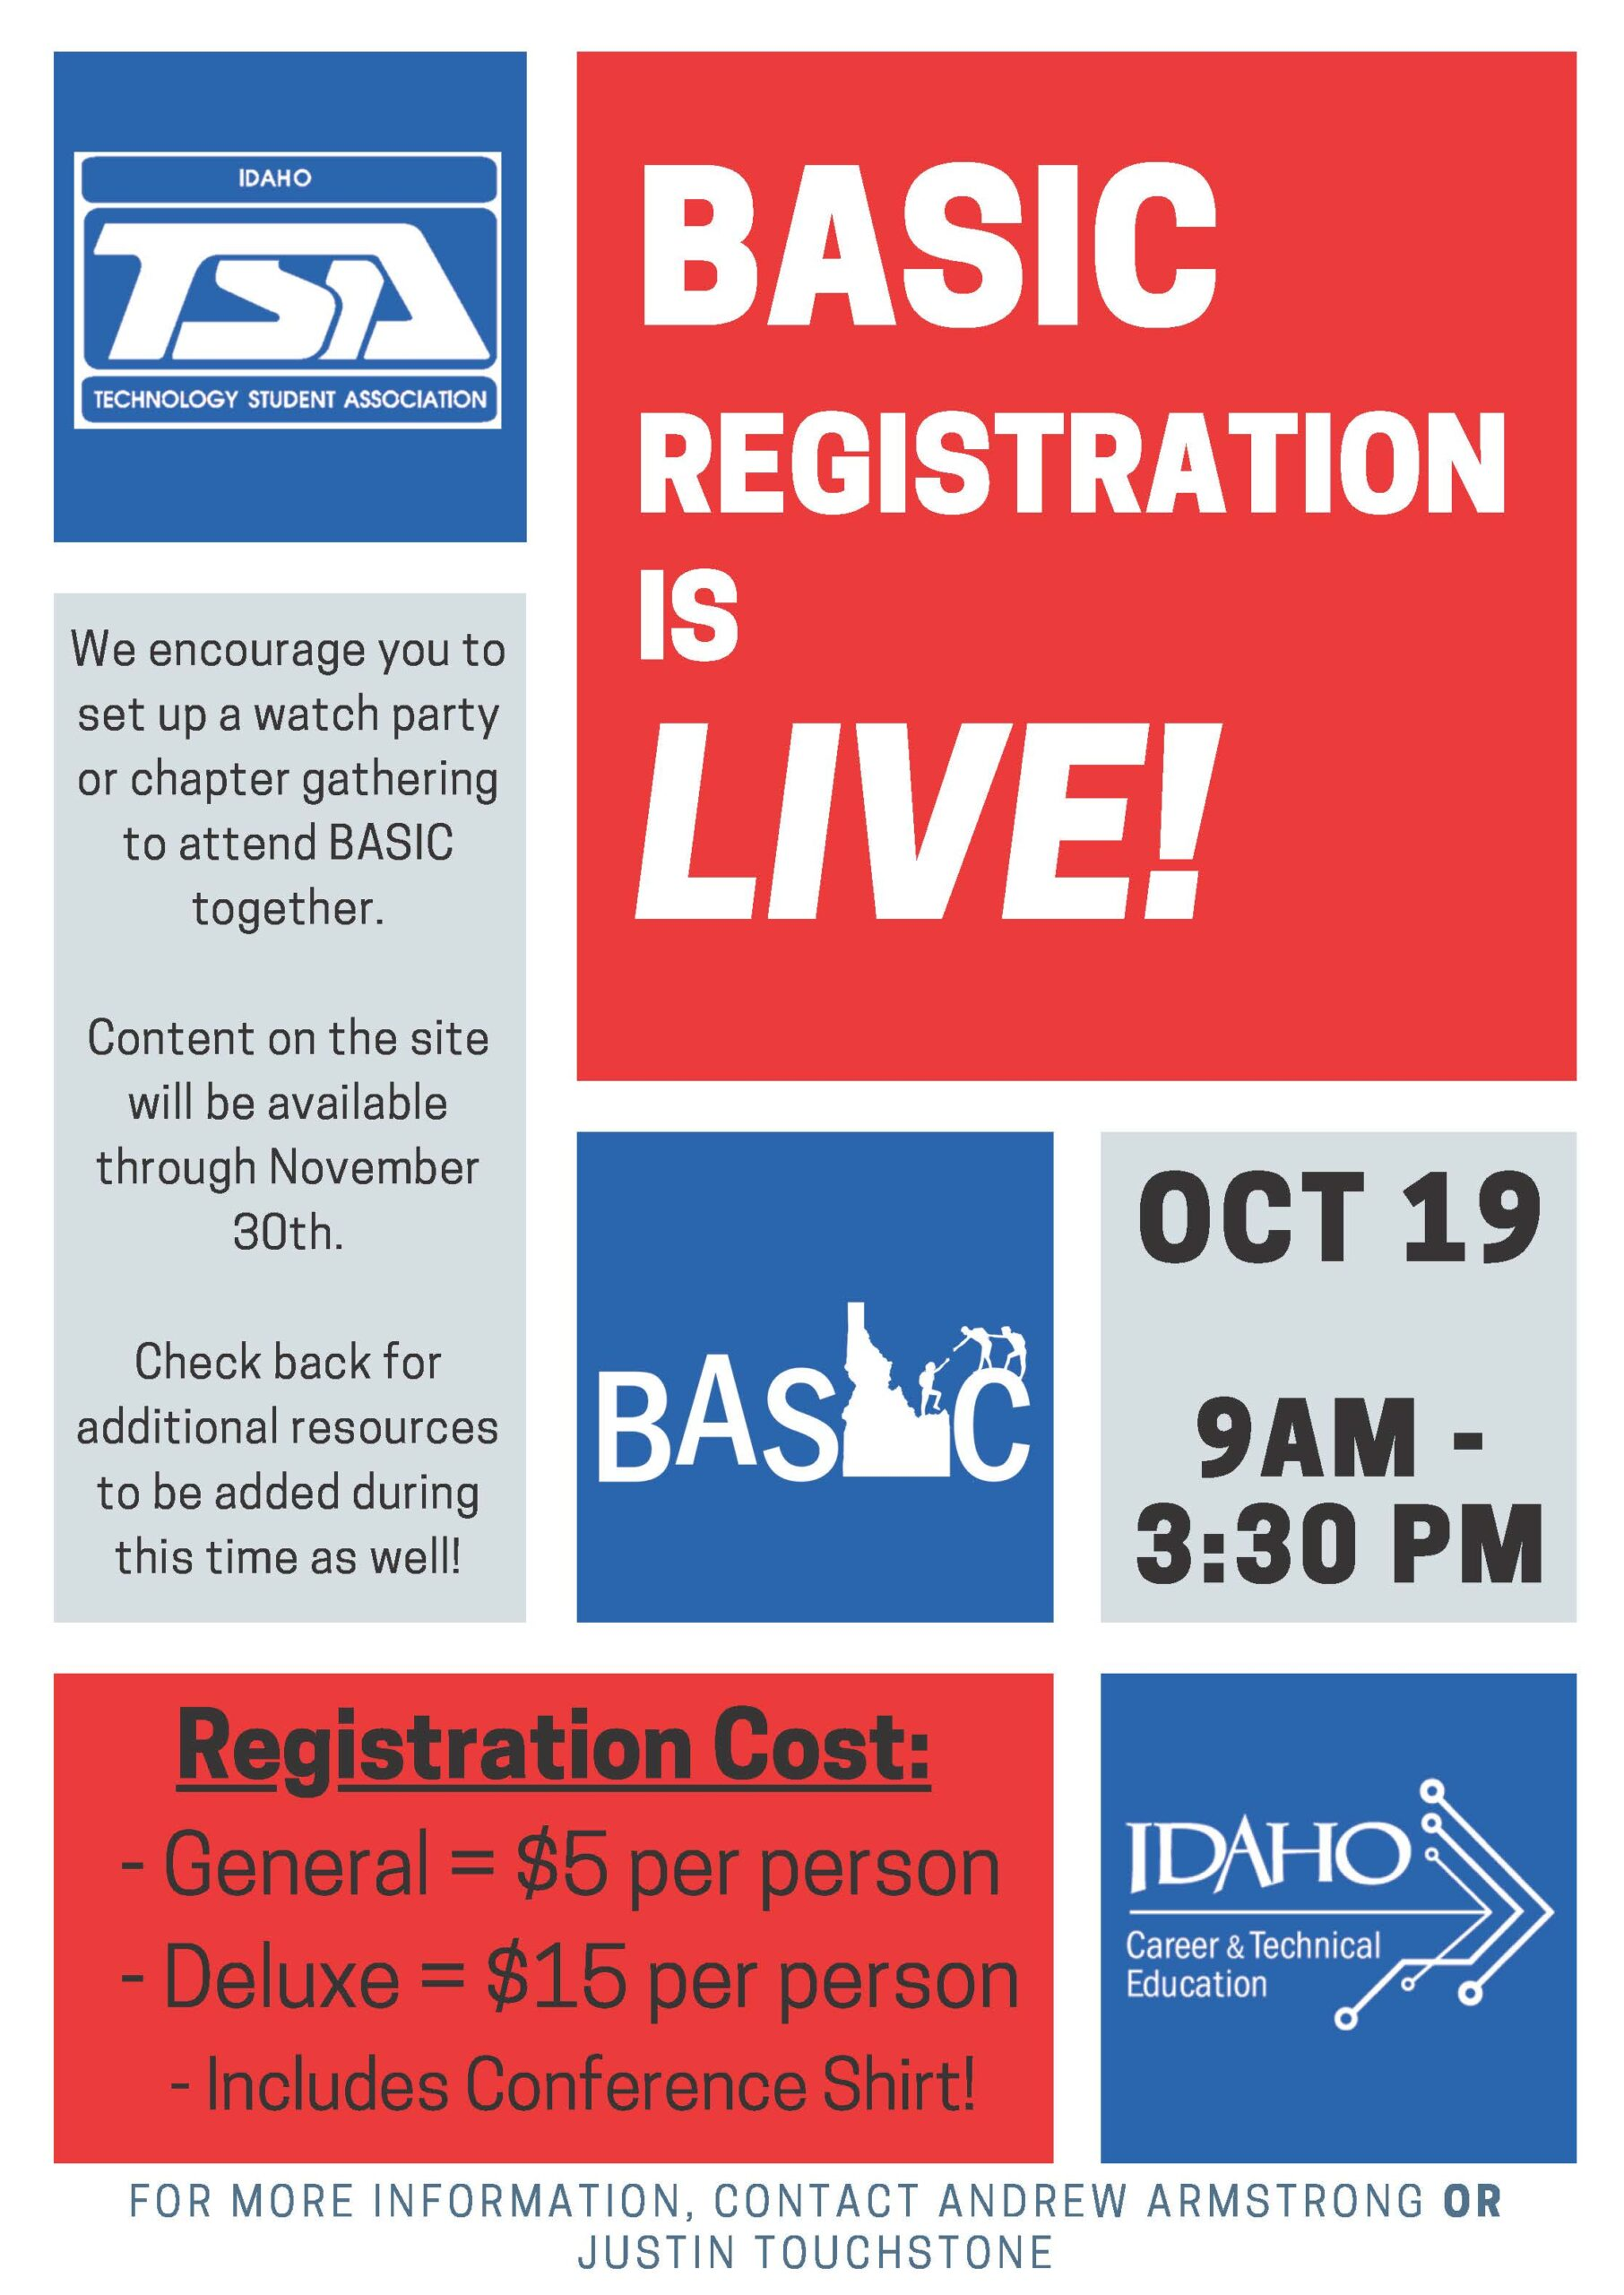 BASIC 2020 Registration Flyer